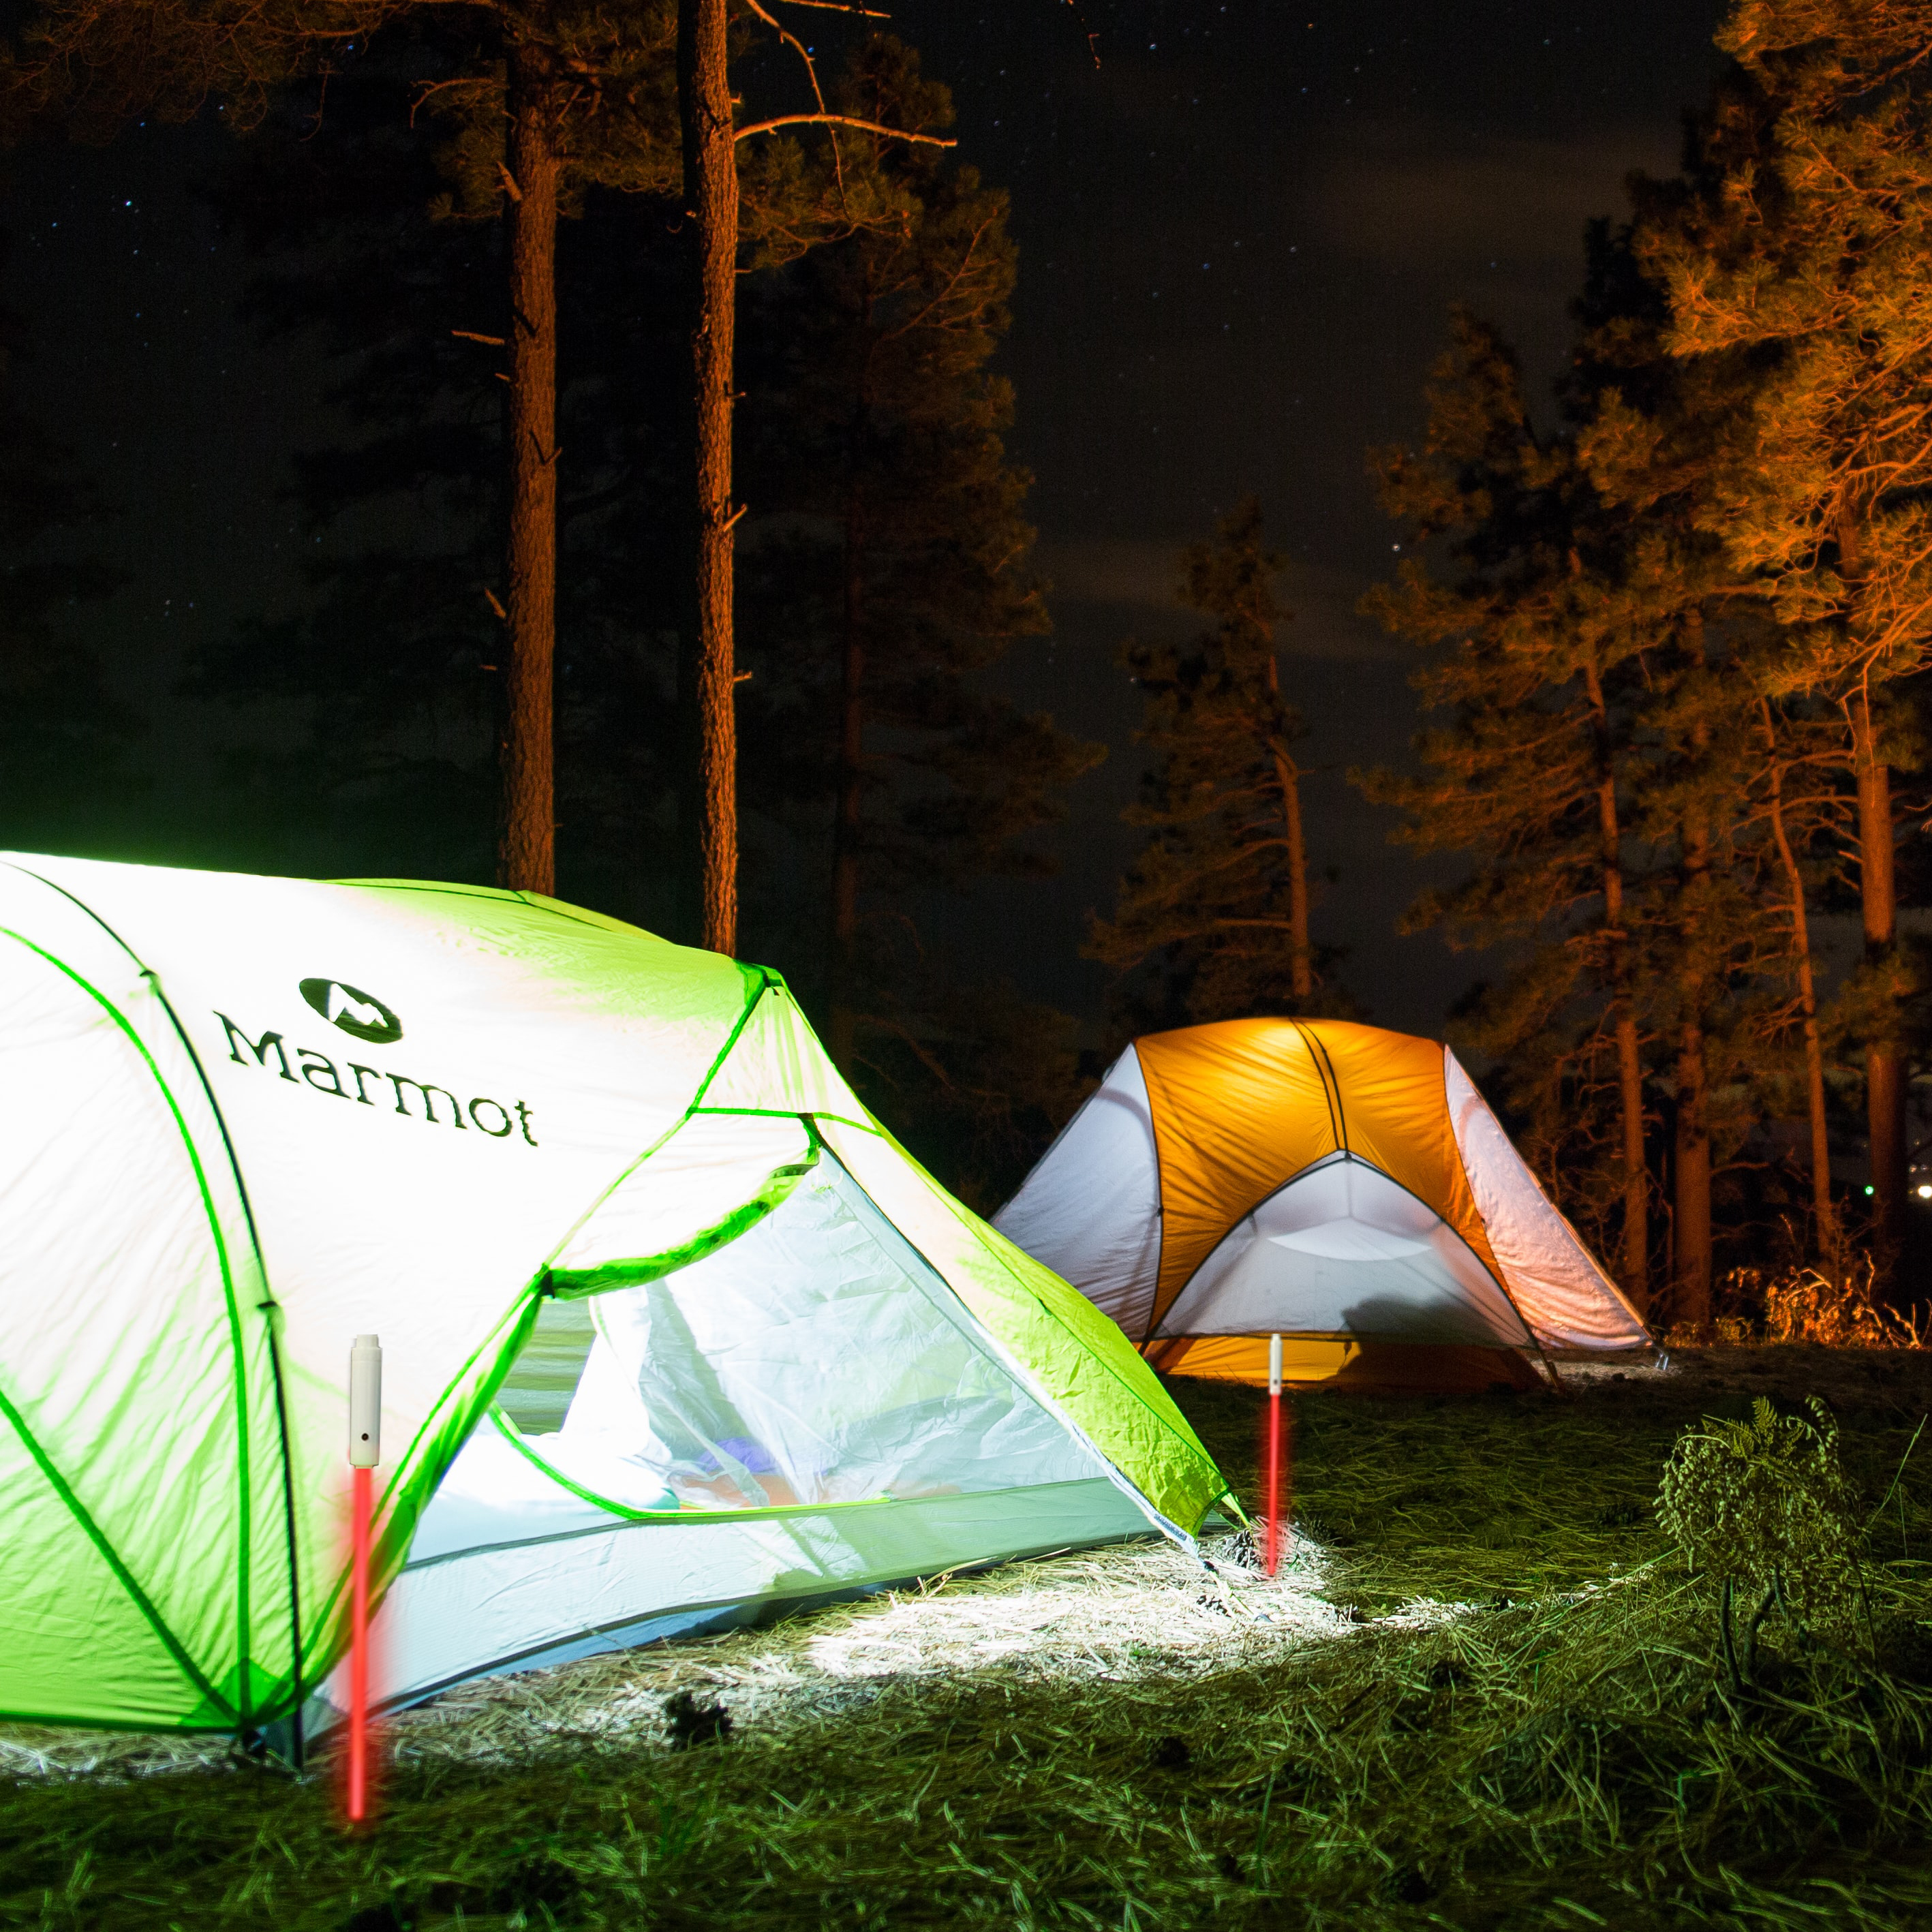 How to make your camping trip fun and bright!